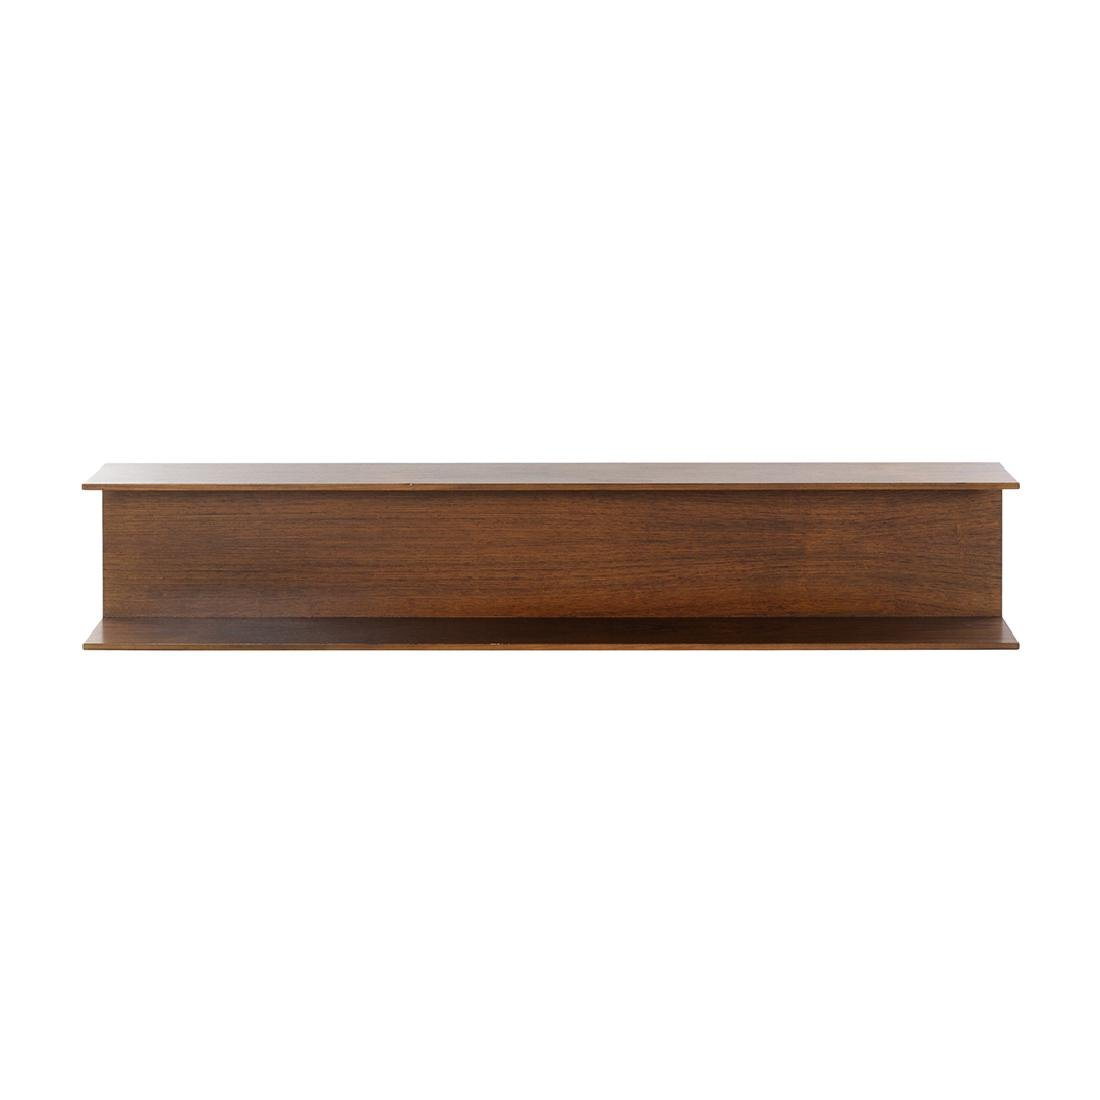 Rosewood Wall-Mounted Shelf